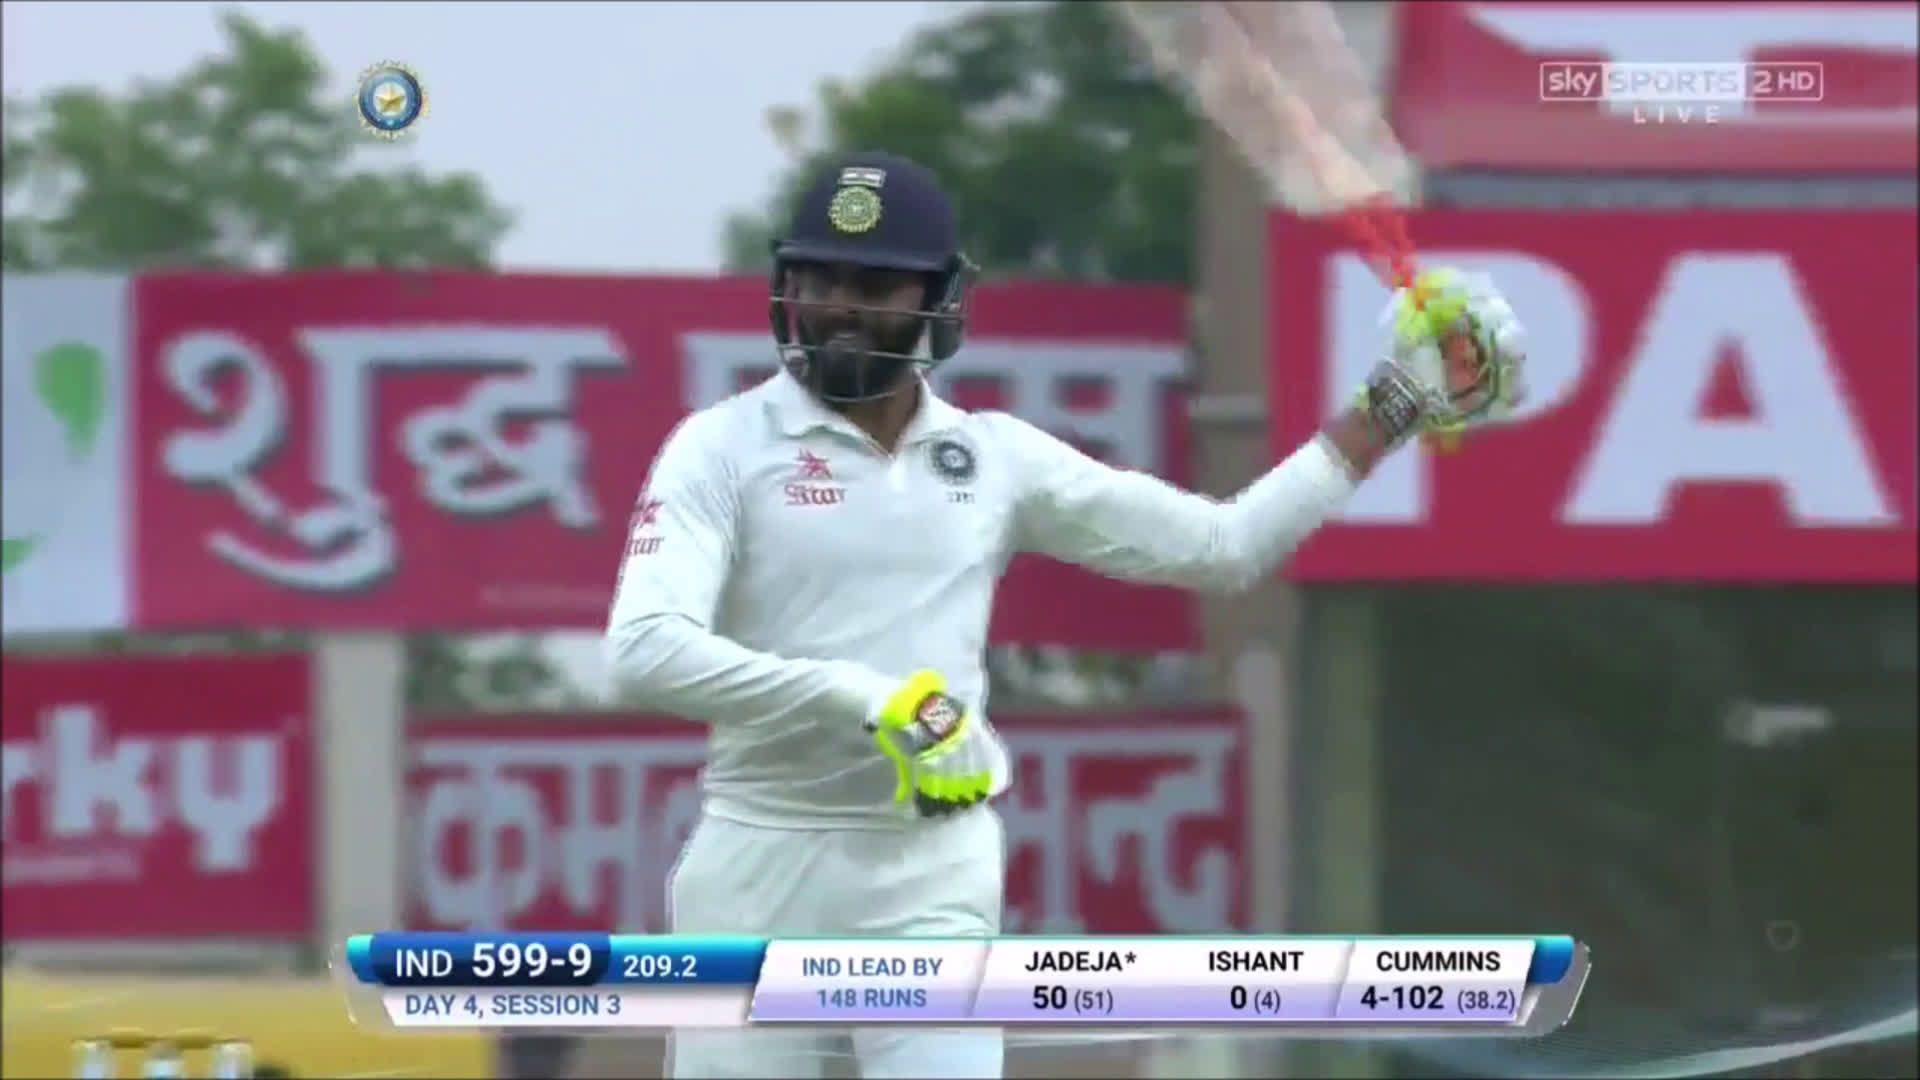 Ravindra Jadeja's swordsman celebration after scoring 50